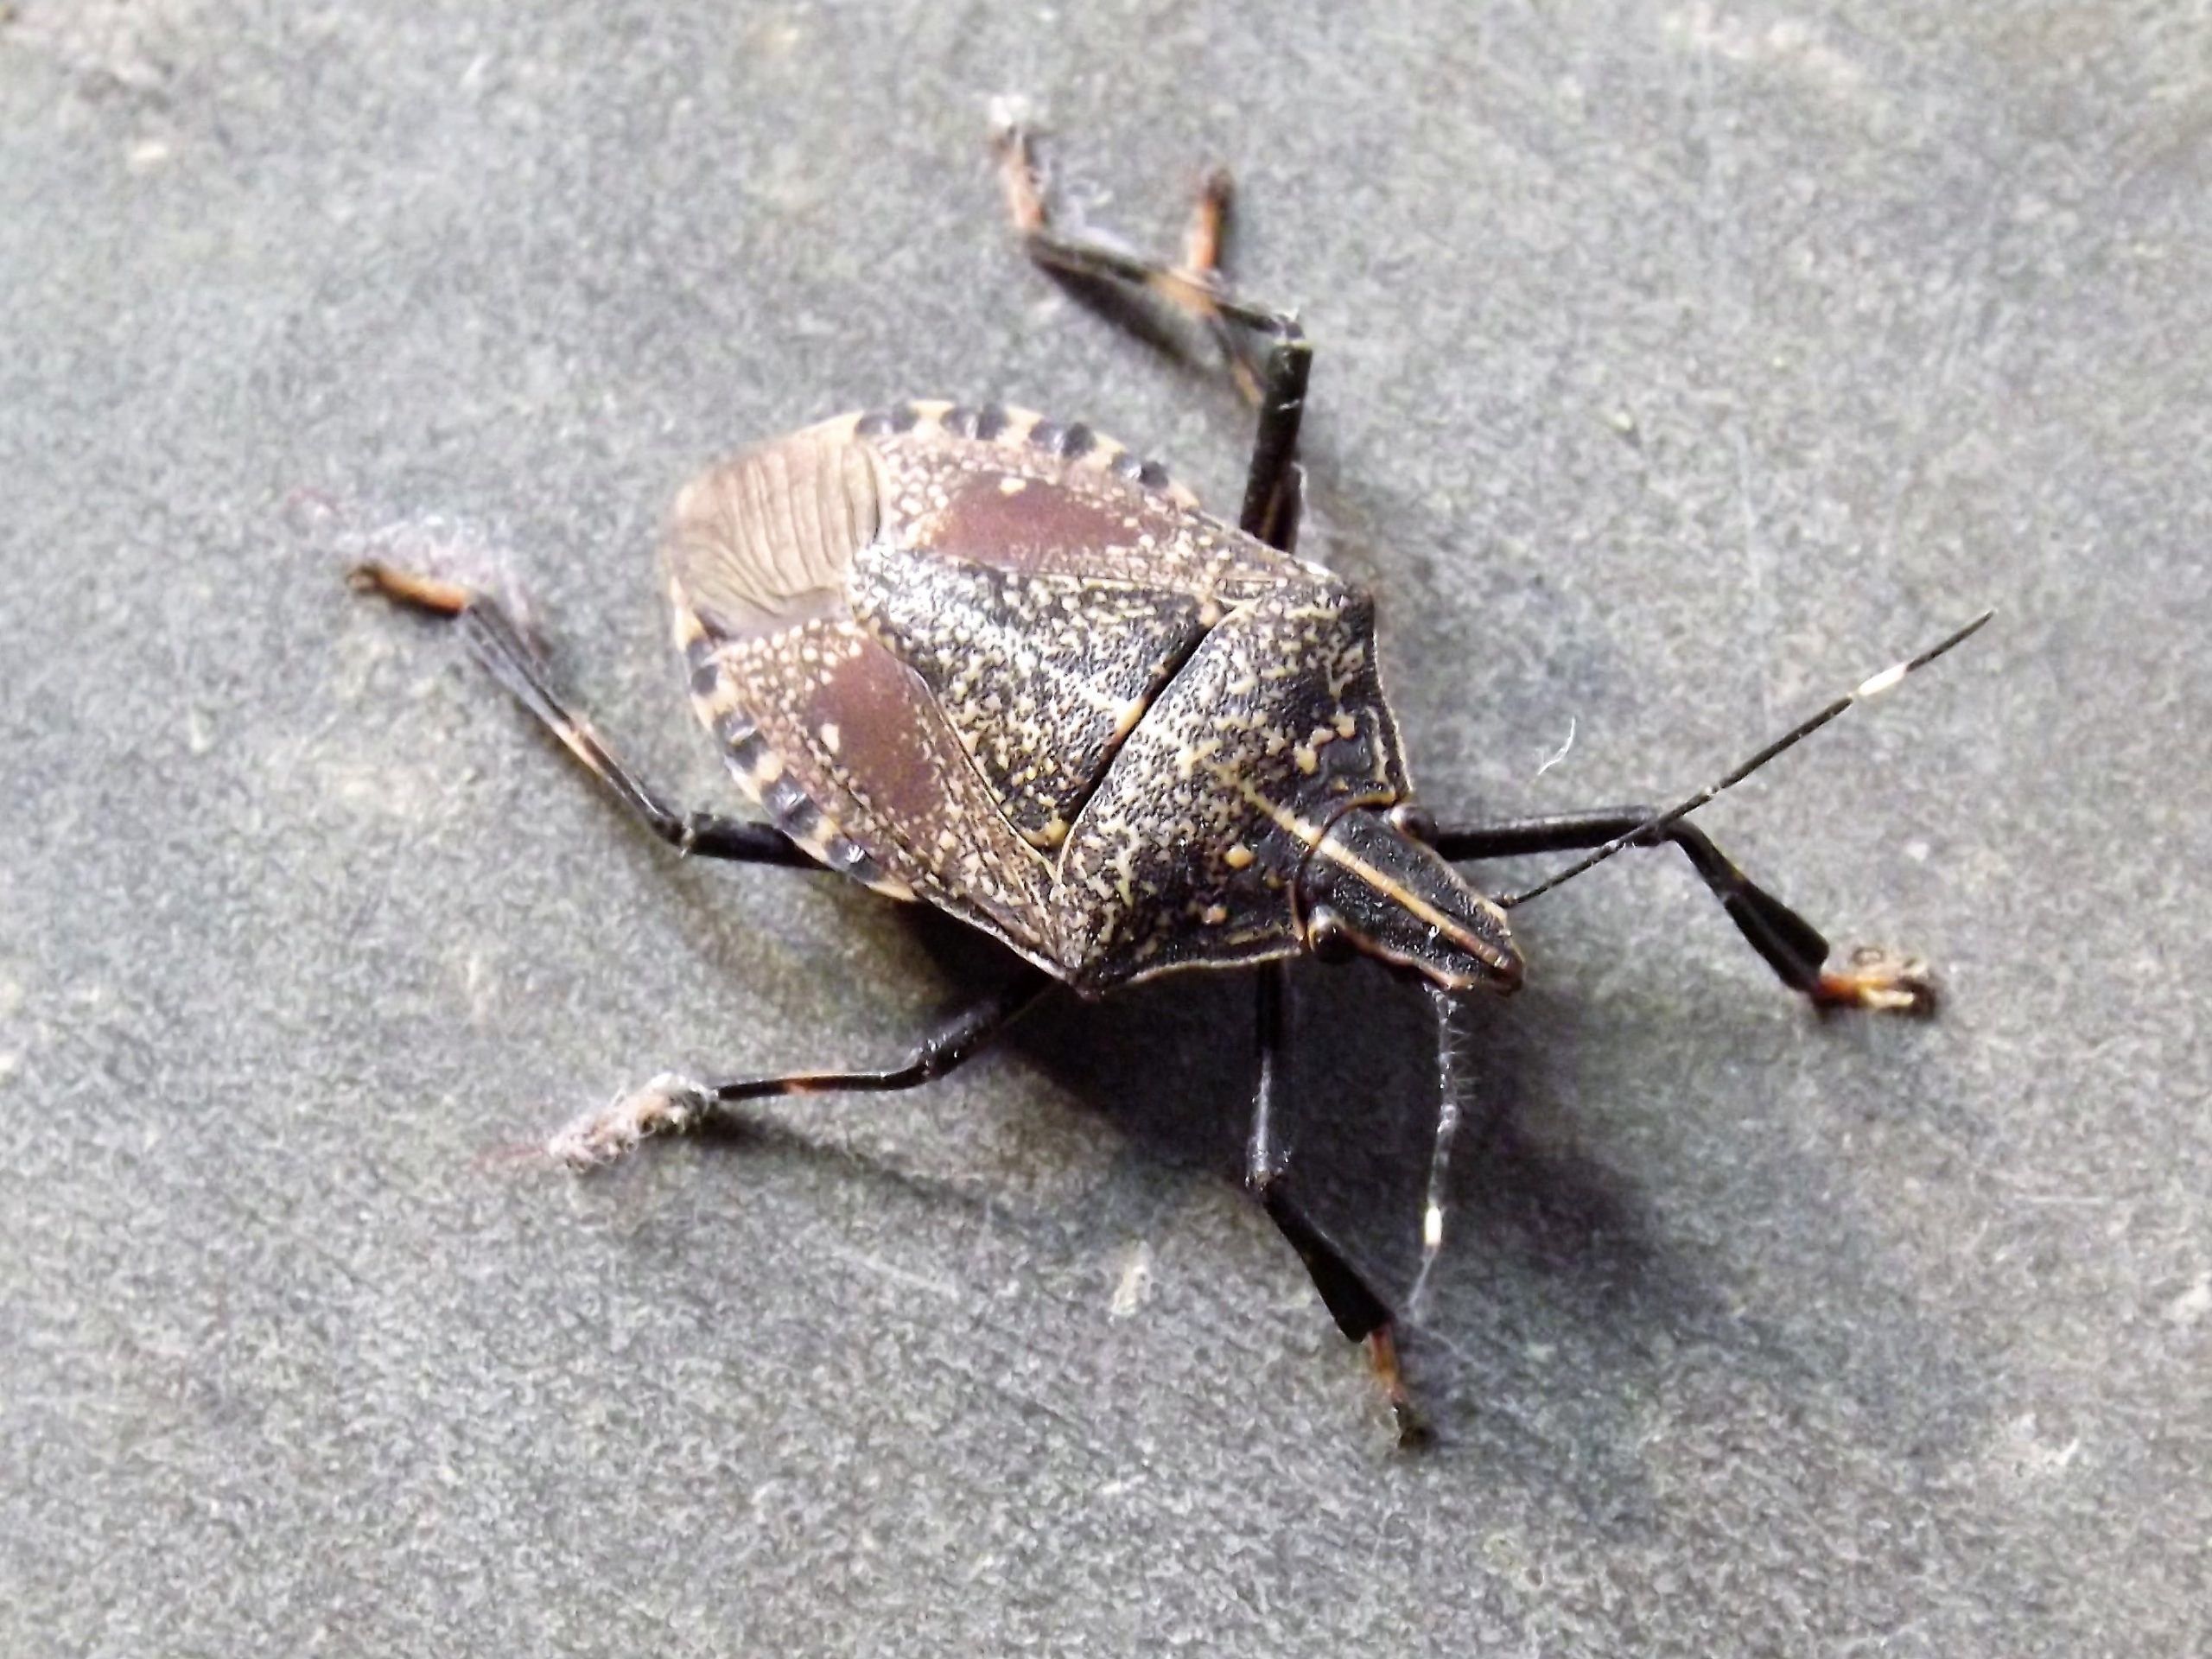 Brown insect sitting on the ground